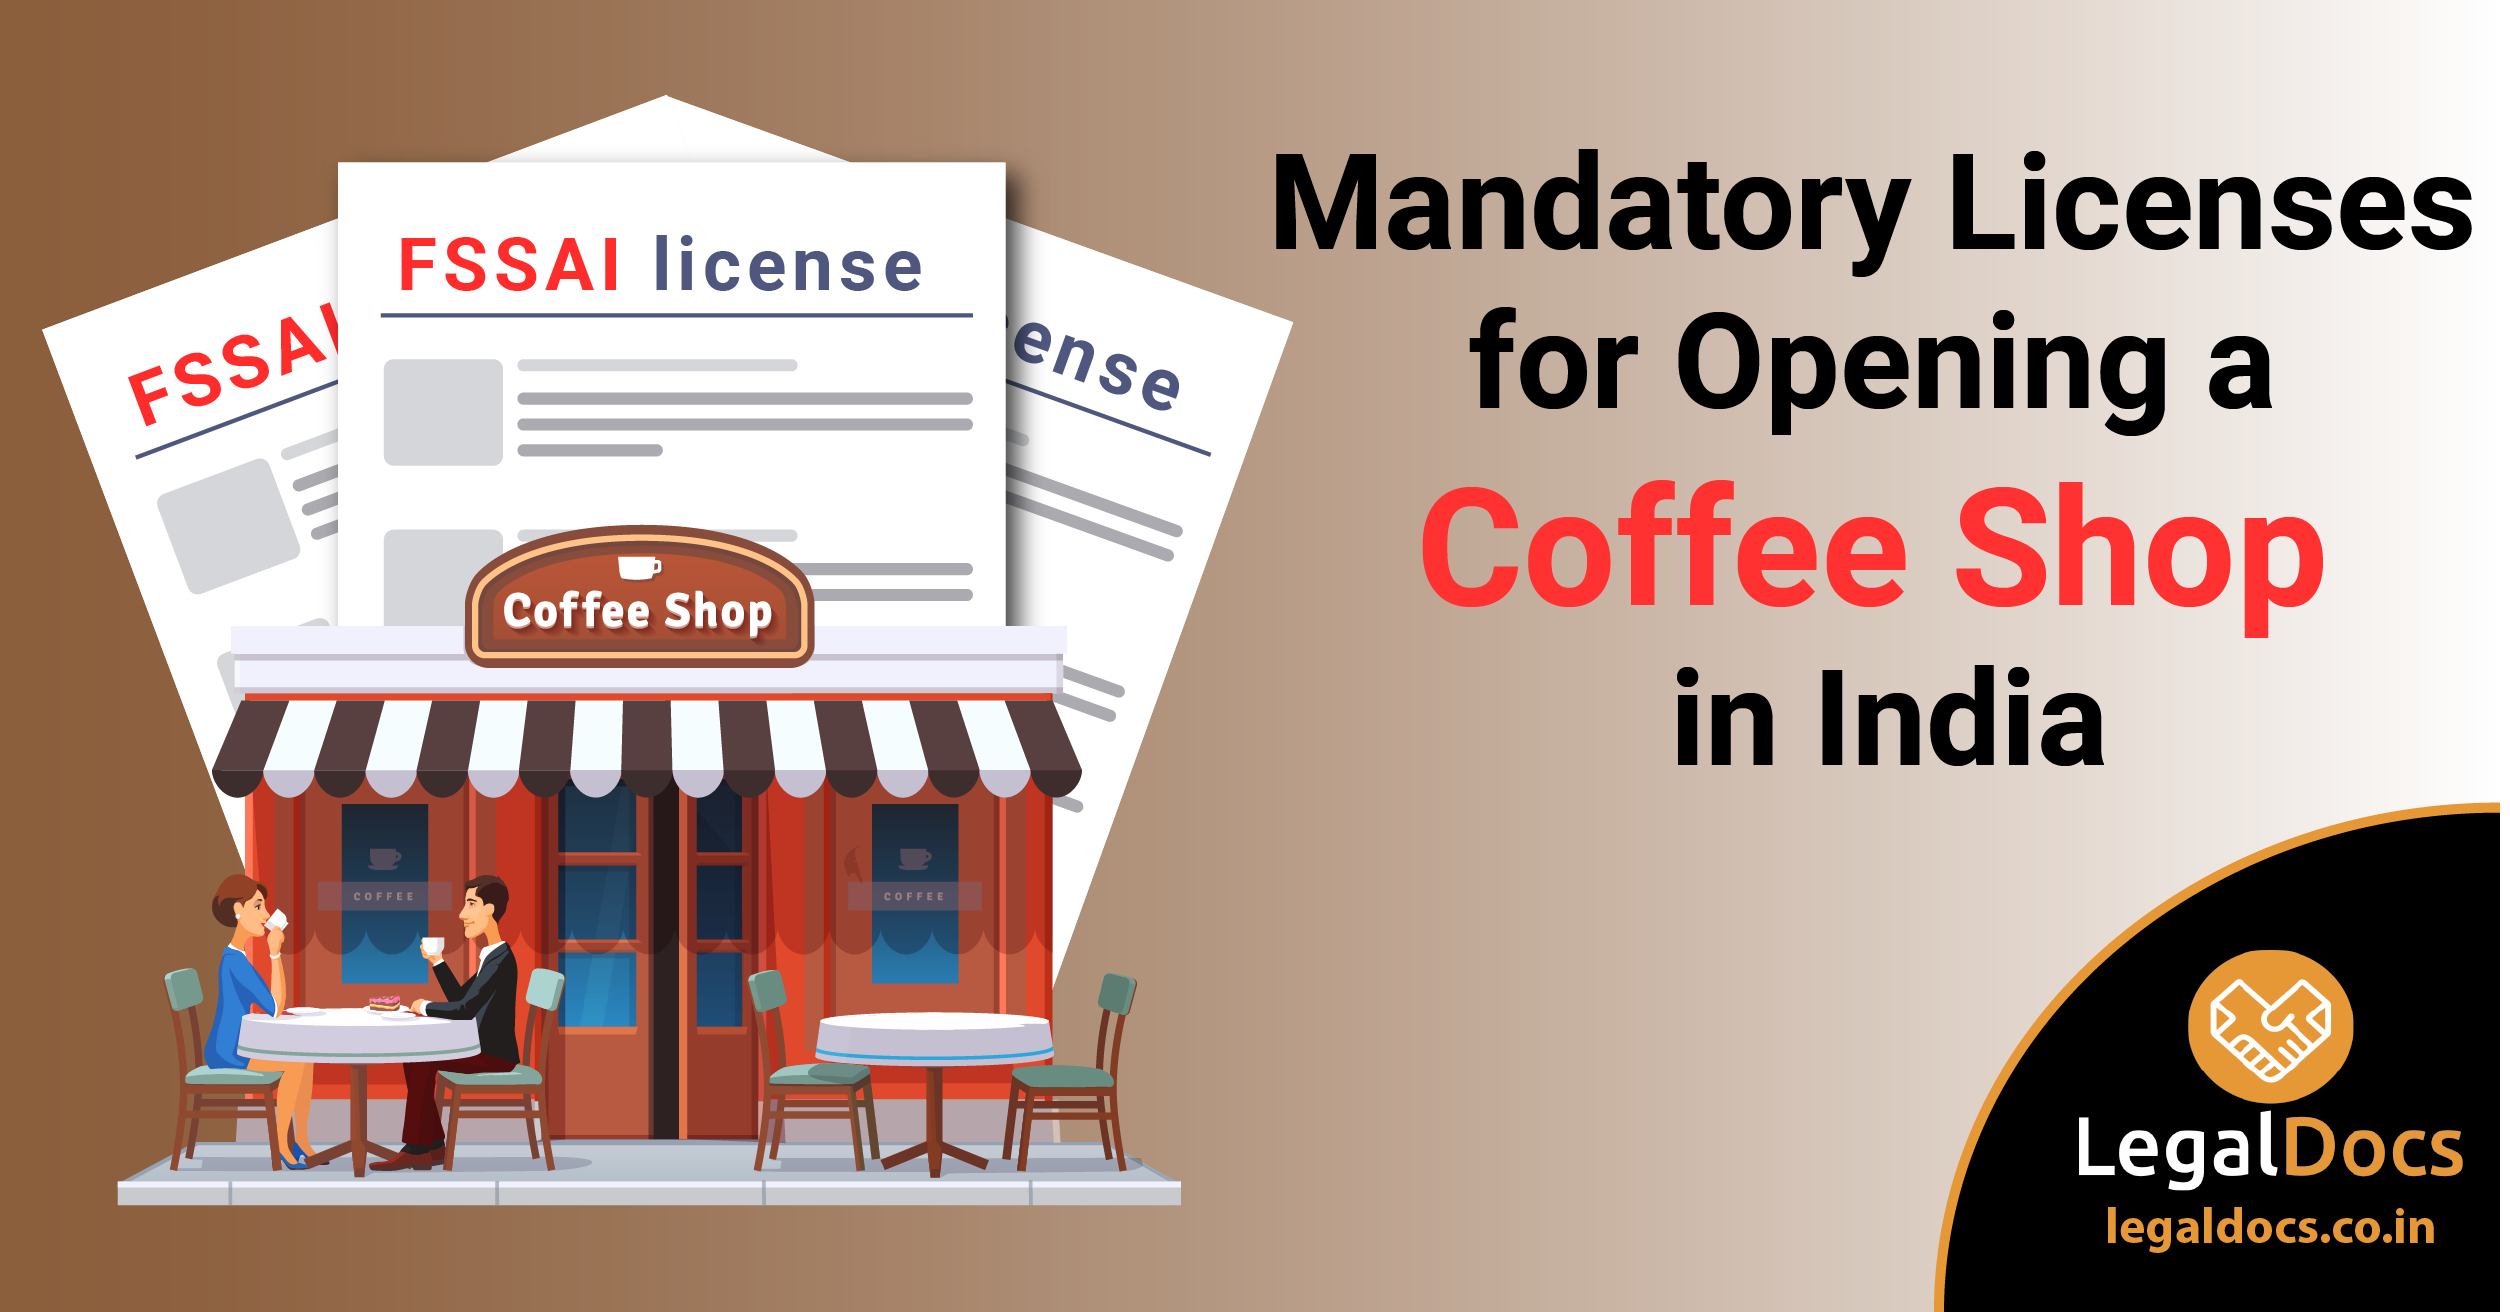 Mandatory Licenses for Opening a Coffee Shop in India - LegalDocs